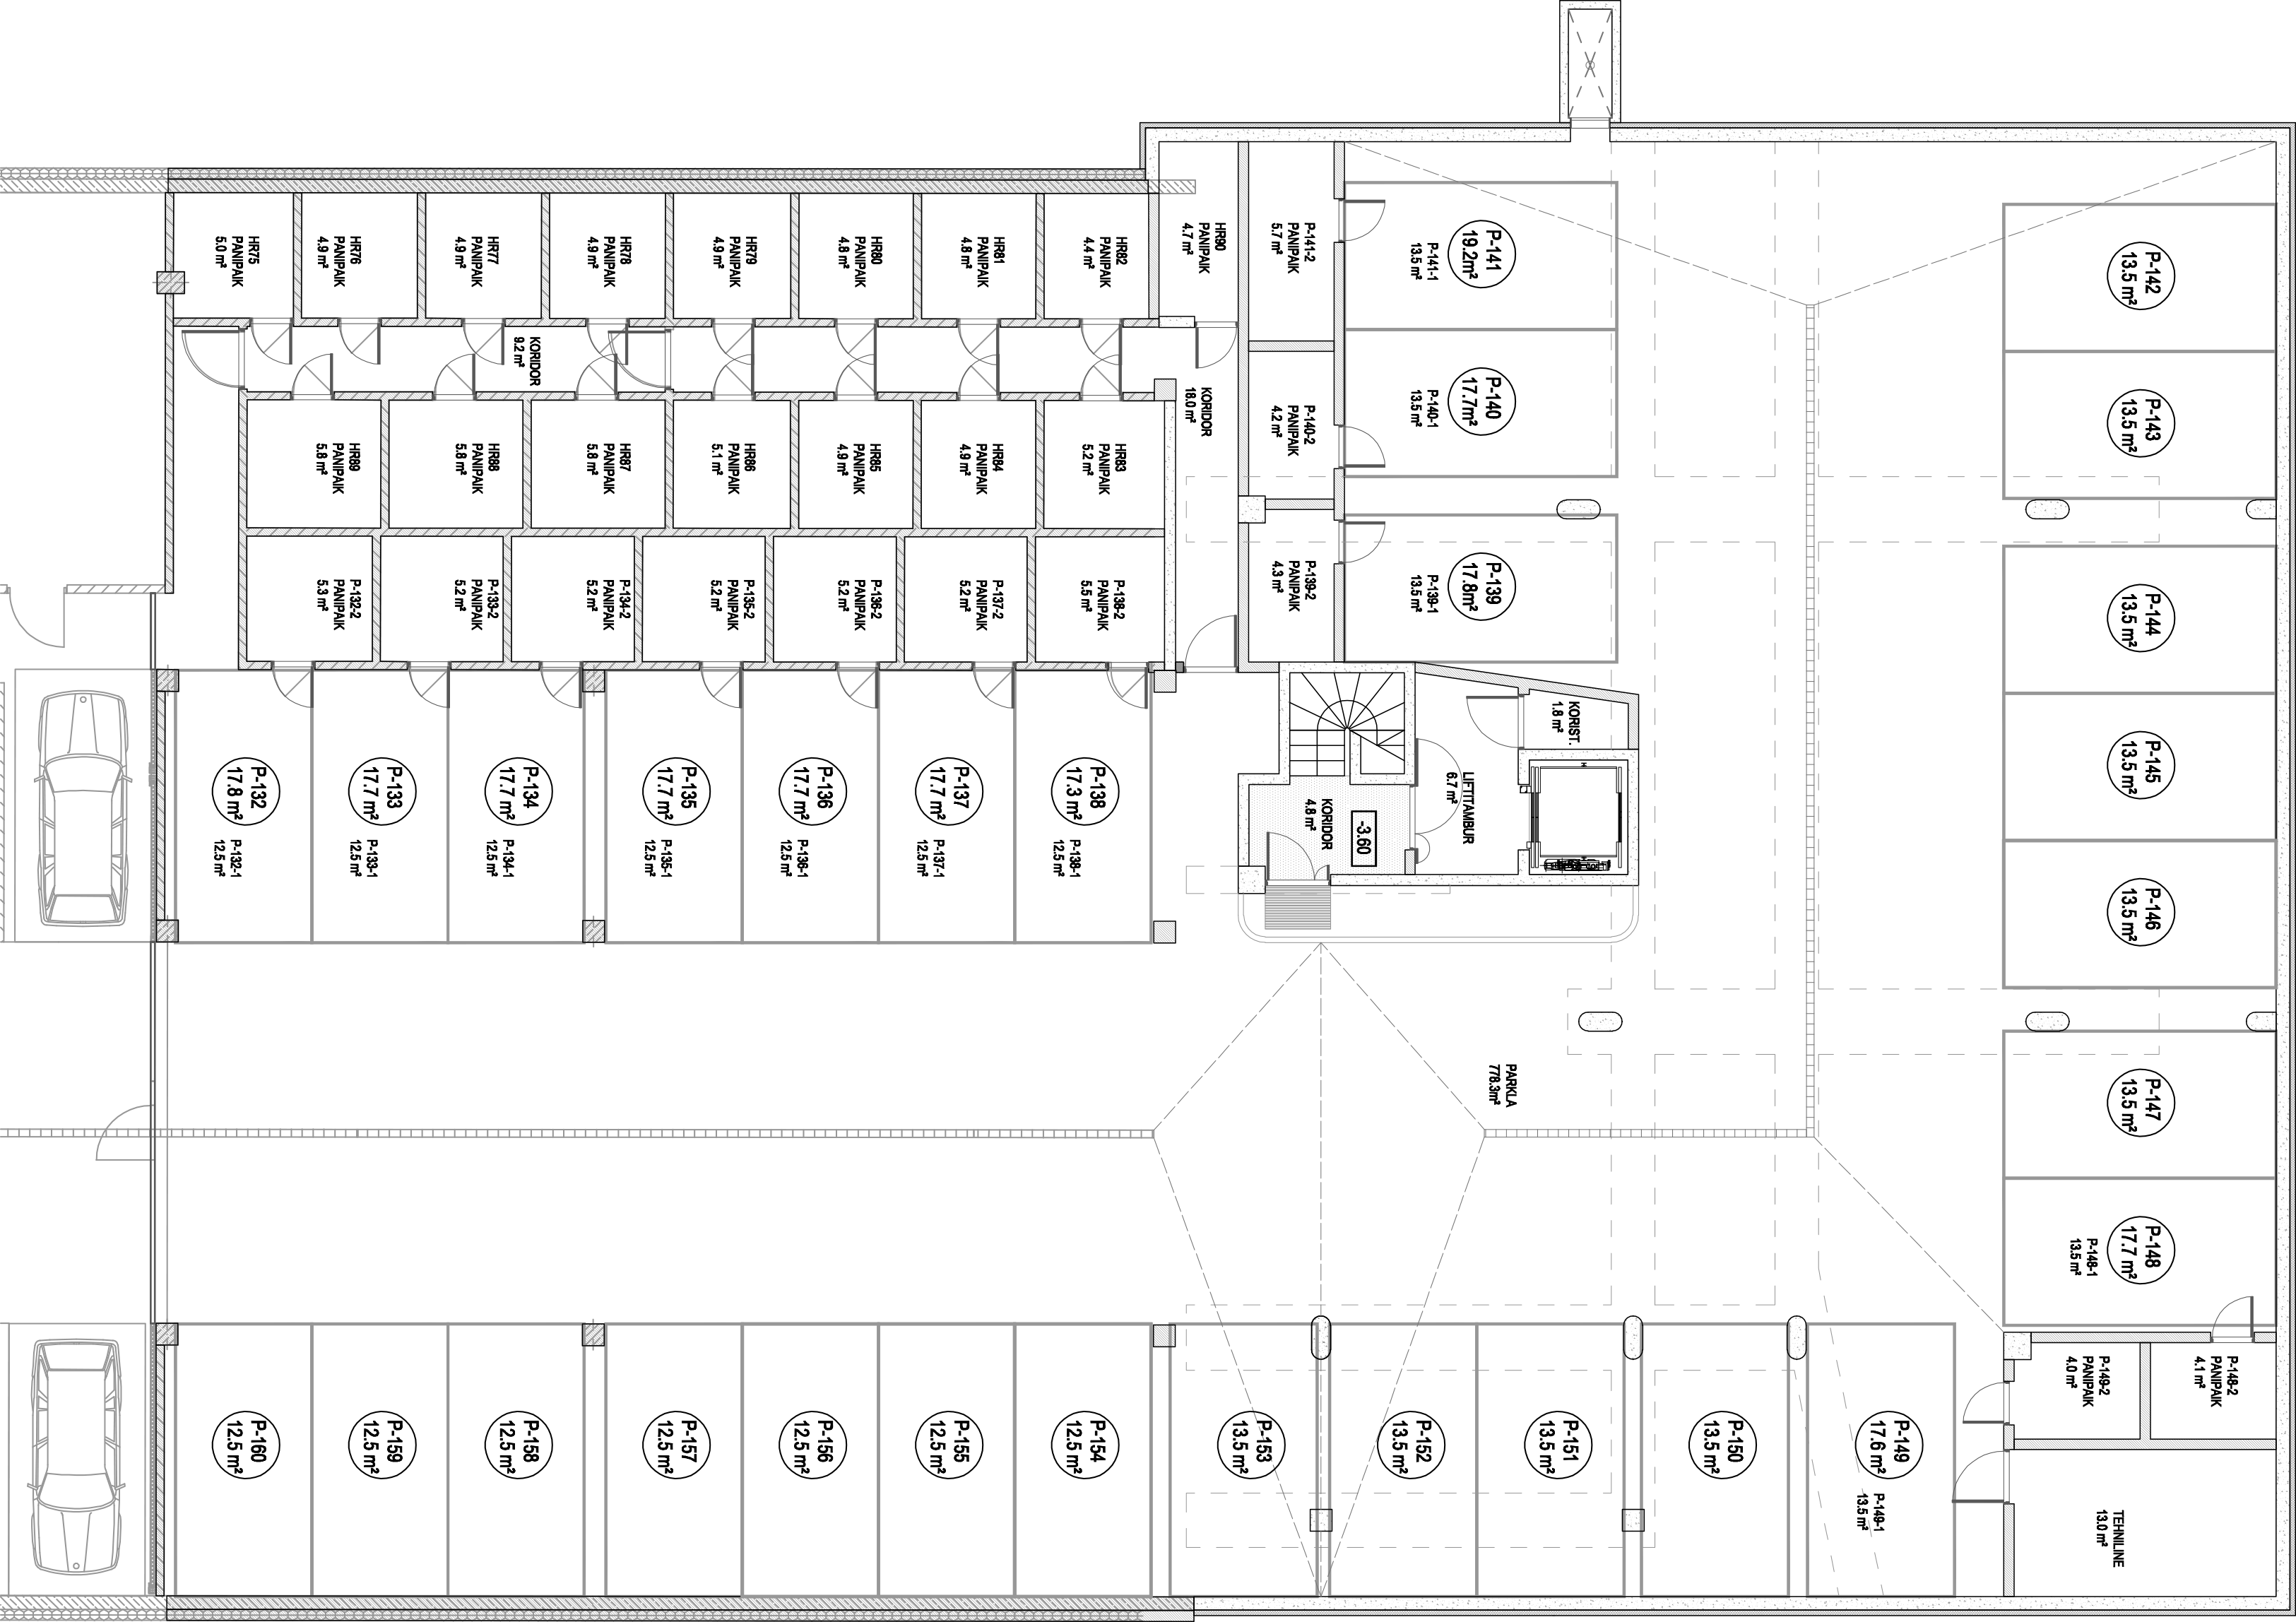 Floor 0 plan of Tuukri 25 Apartment House